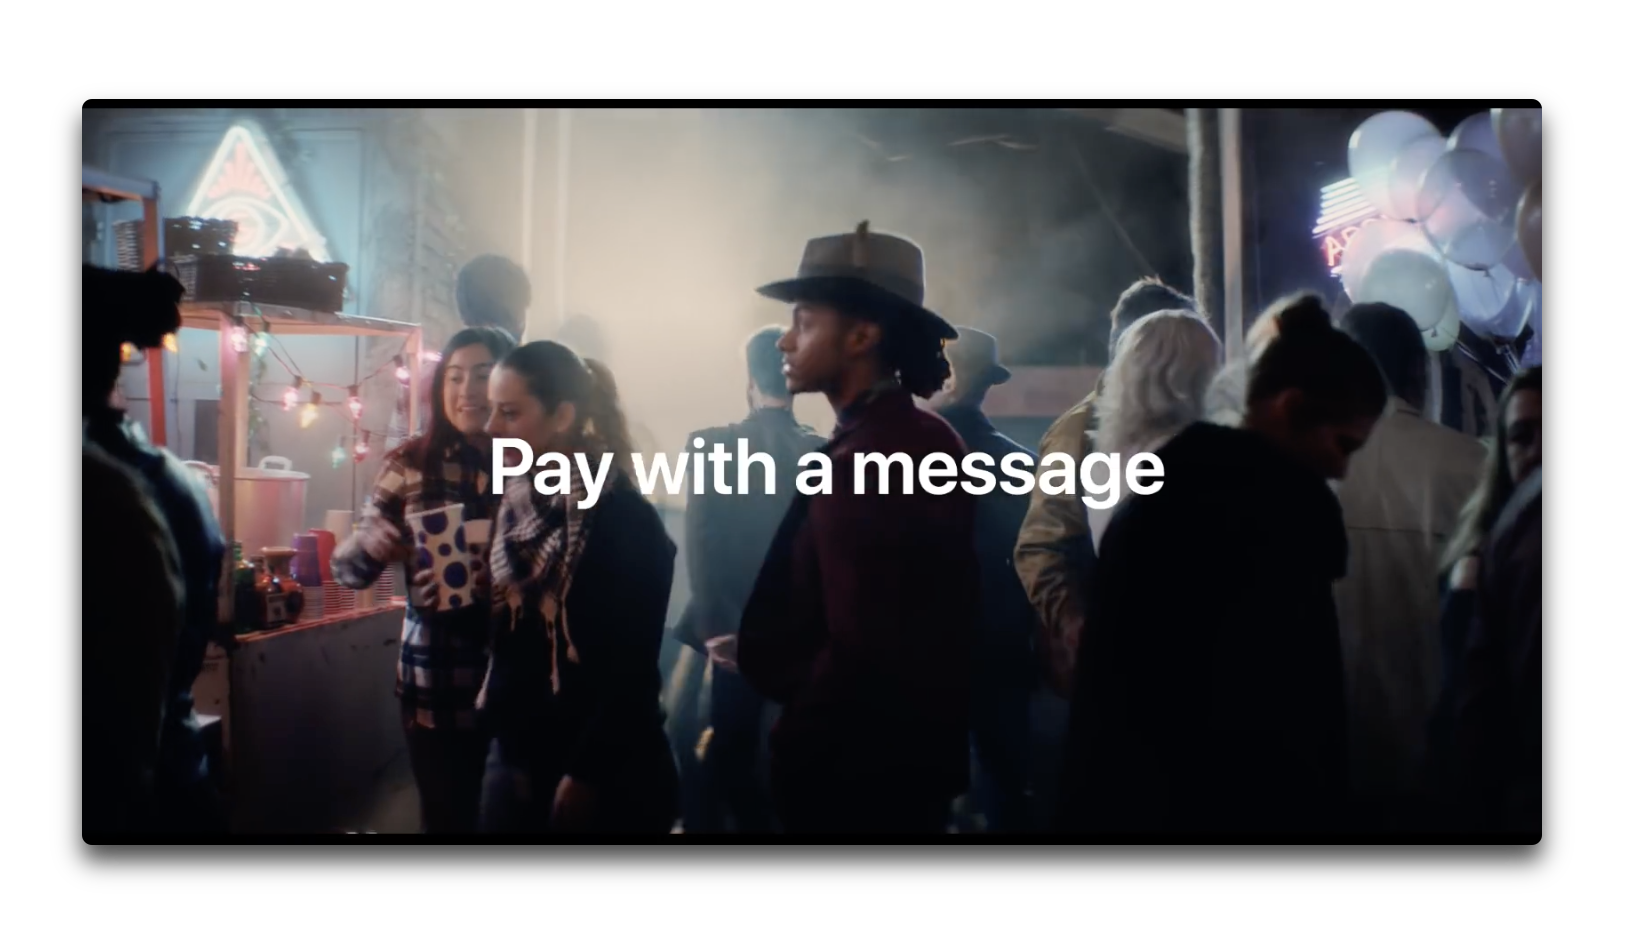 Apple、iPhone XとFace IDにフォーカスした新しいCF「Pay with a message」を公開